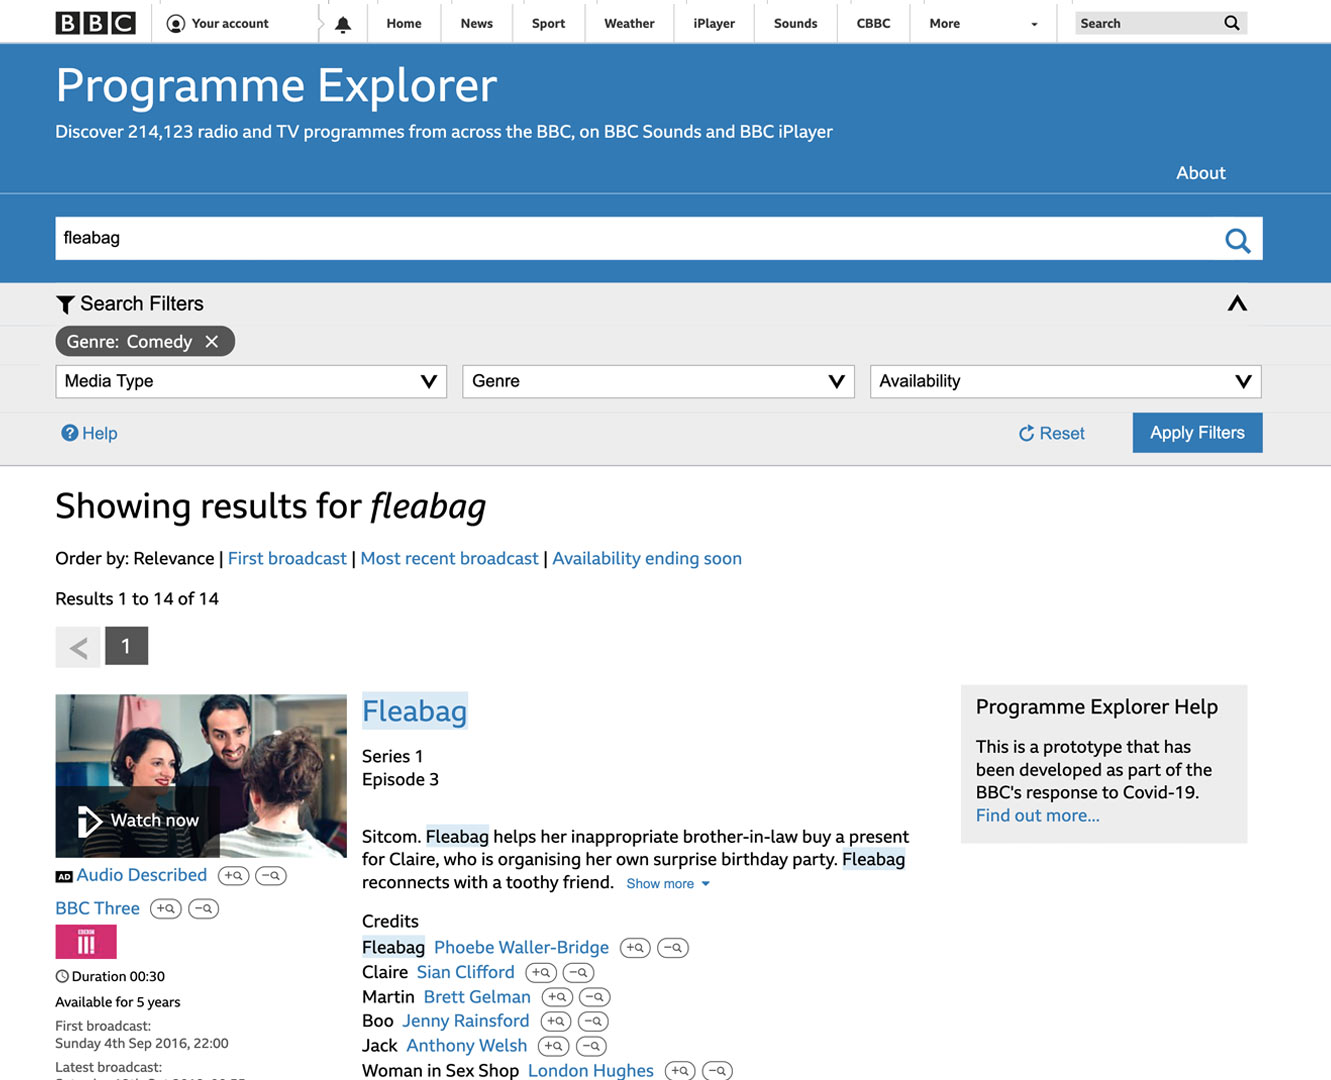 BBC Programme Explorer search results screenshot